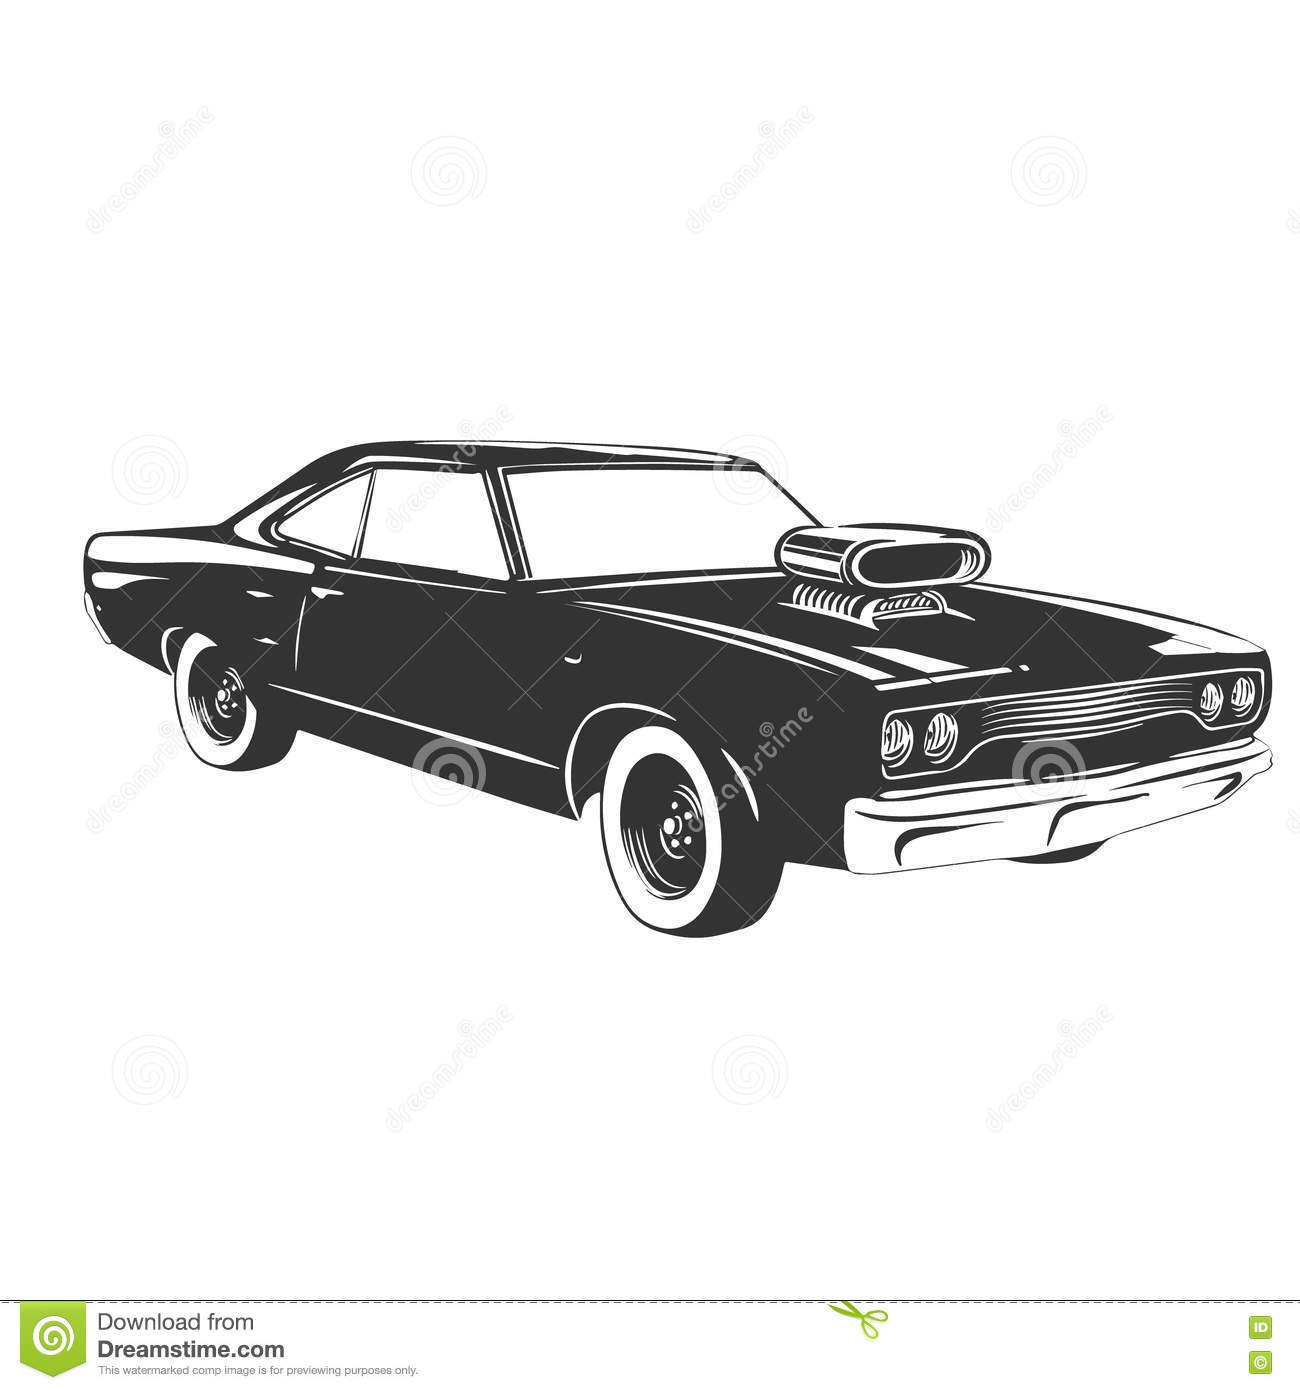 Vintage Muscle Car Stock Vector Illustration Of Drawing 71501442